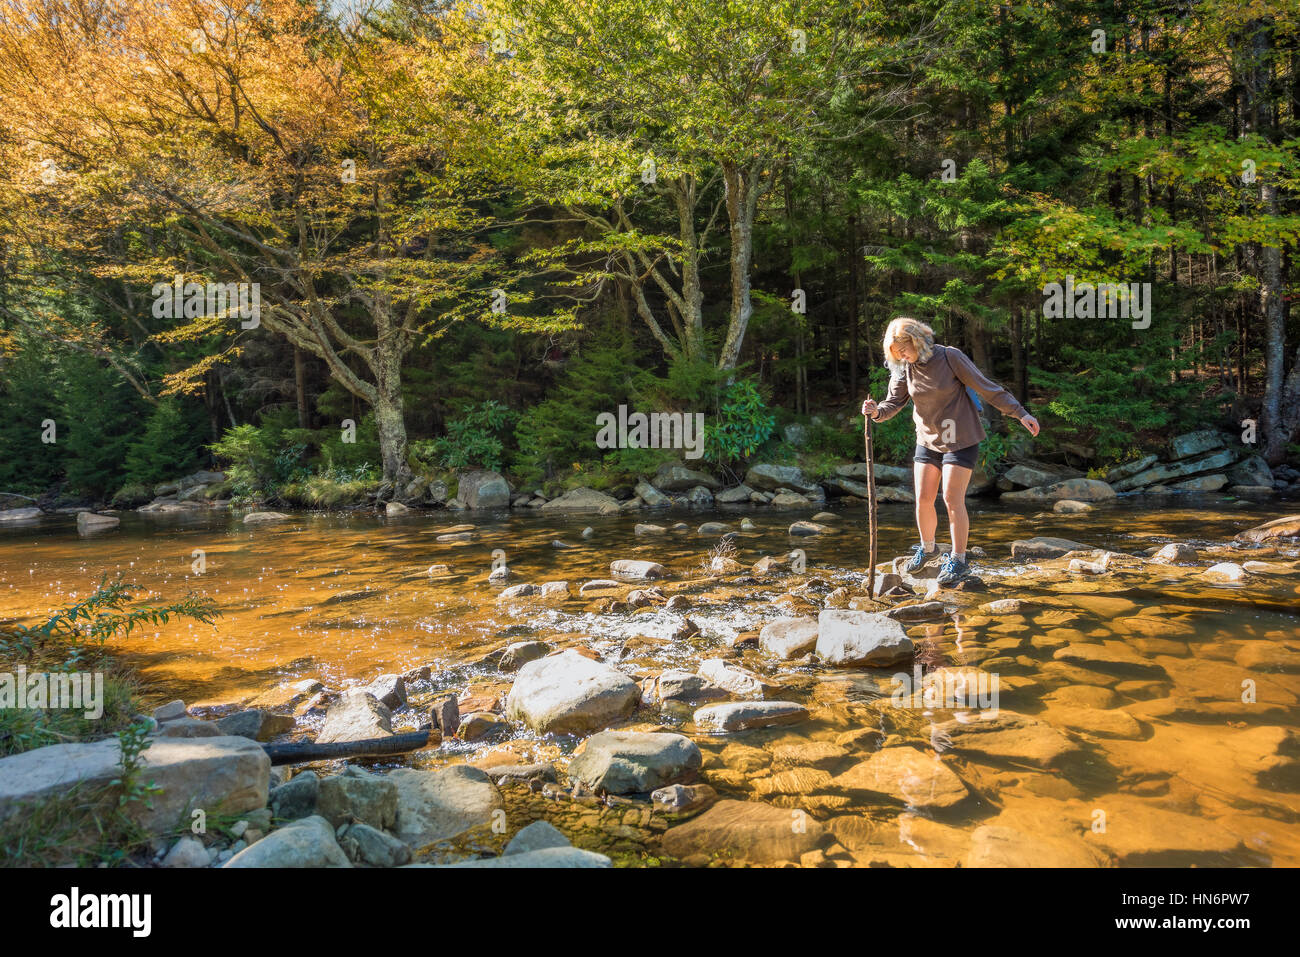 Young woman with stick crossing Red Creek river in Dolly Sods, West Virginia - Stock Image